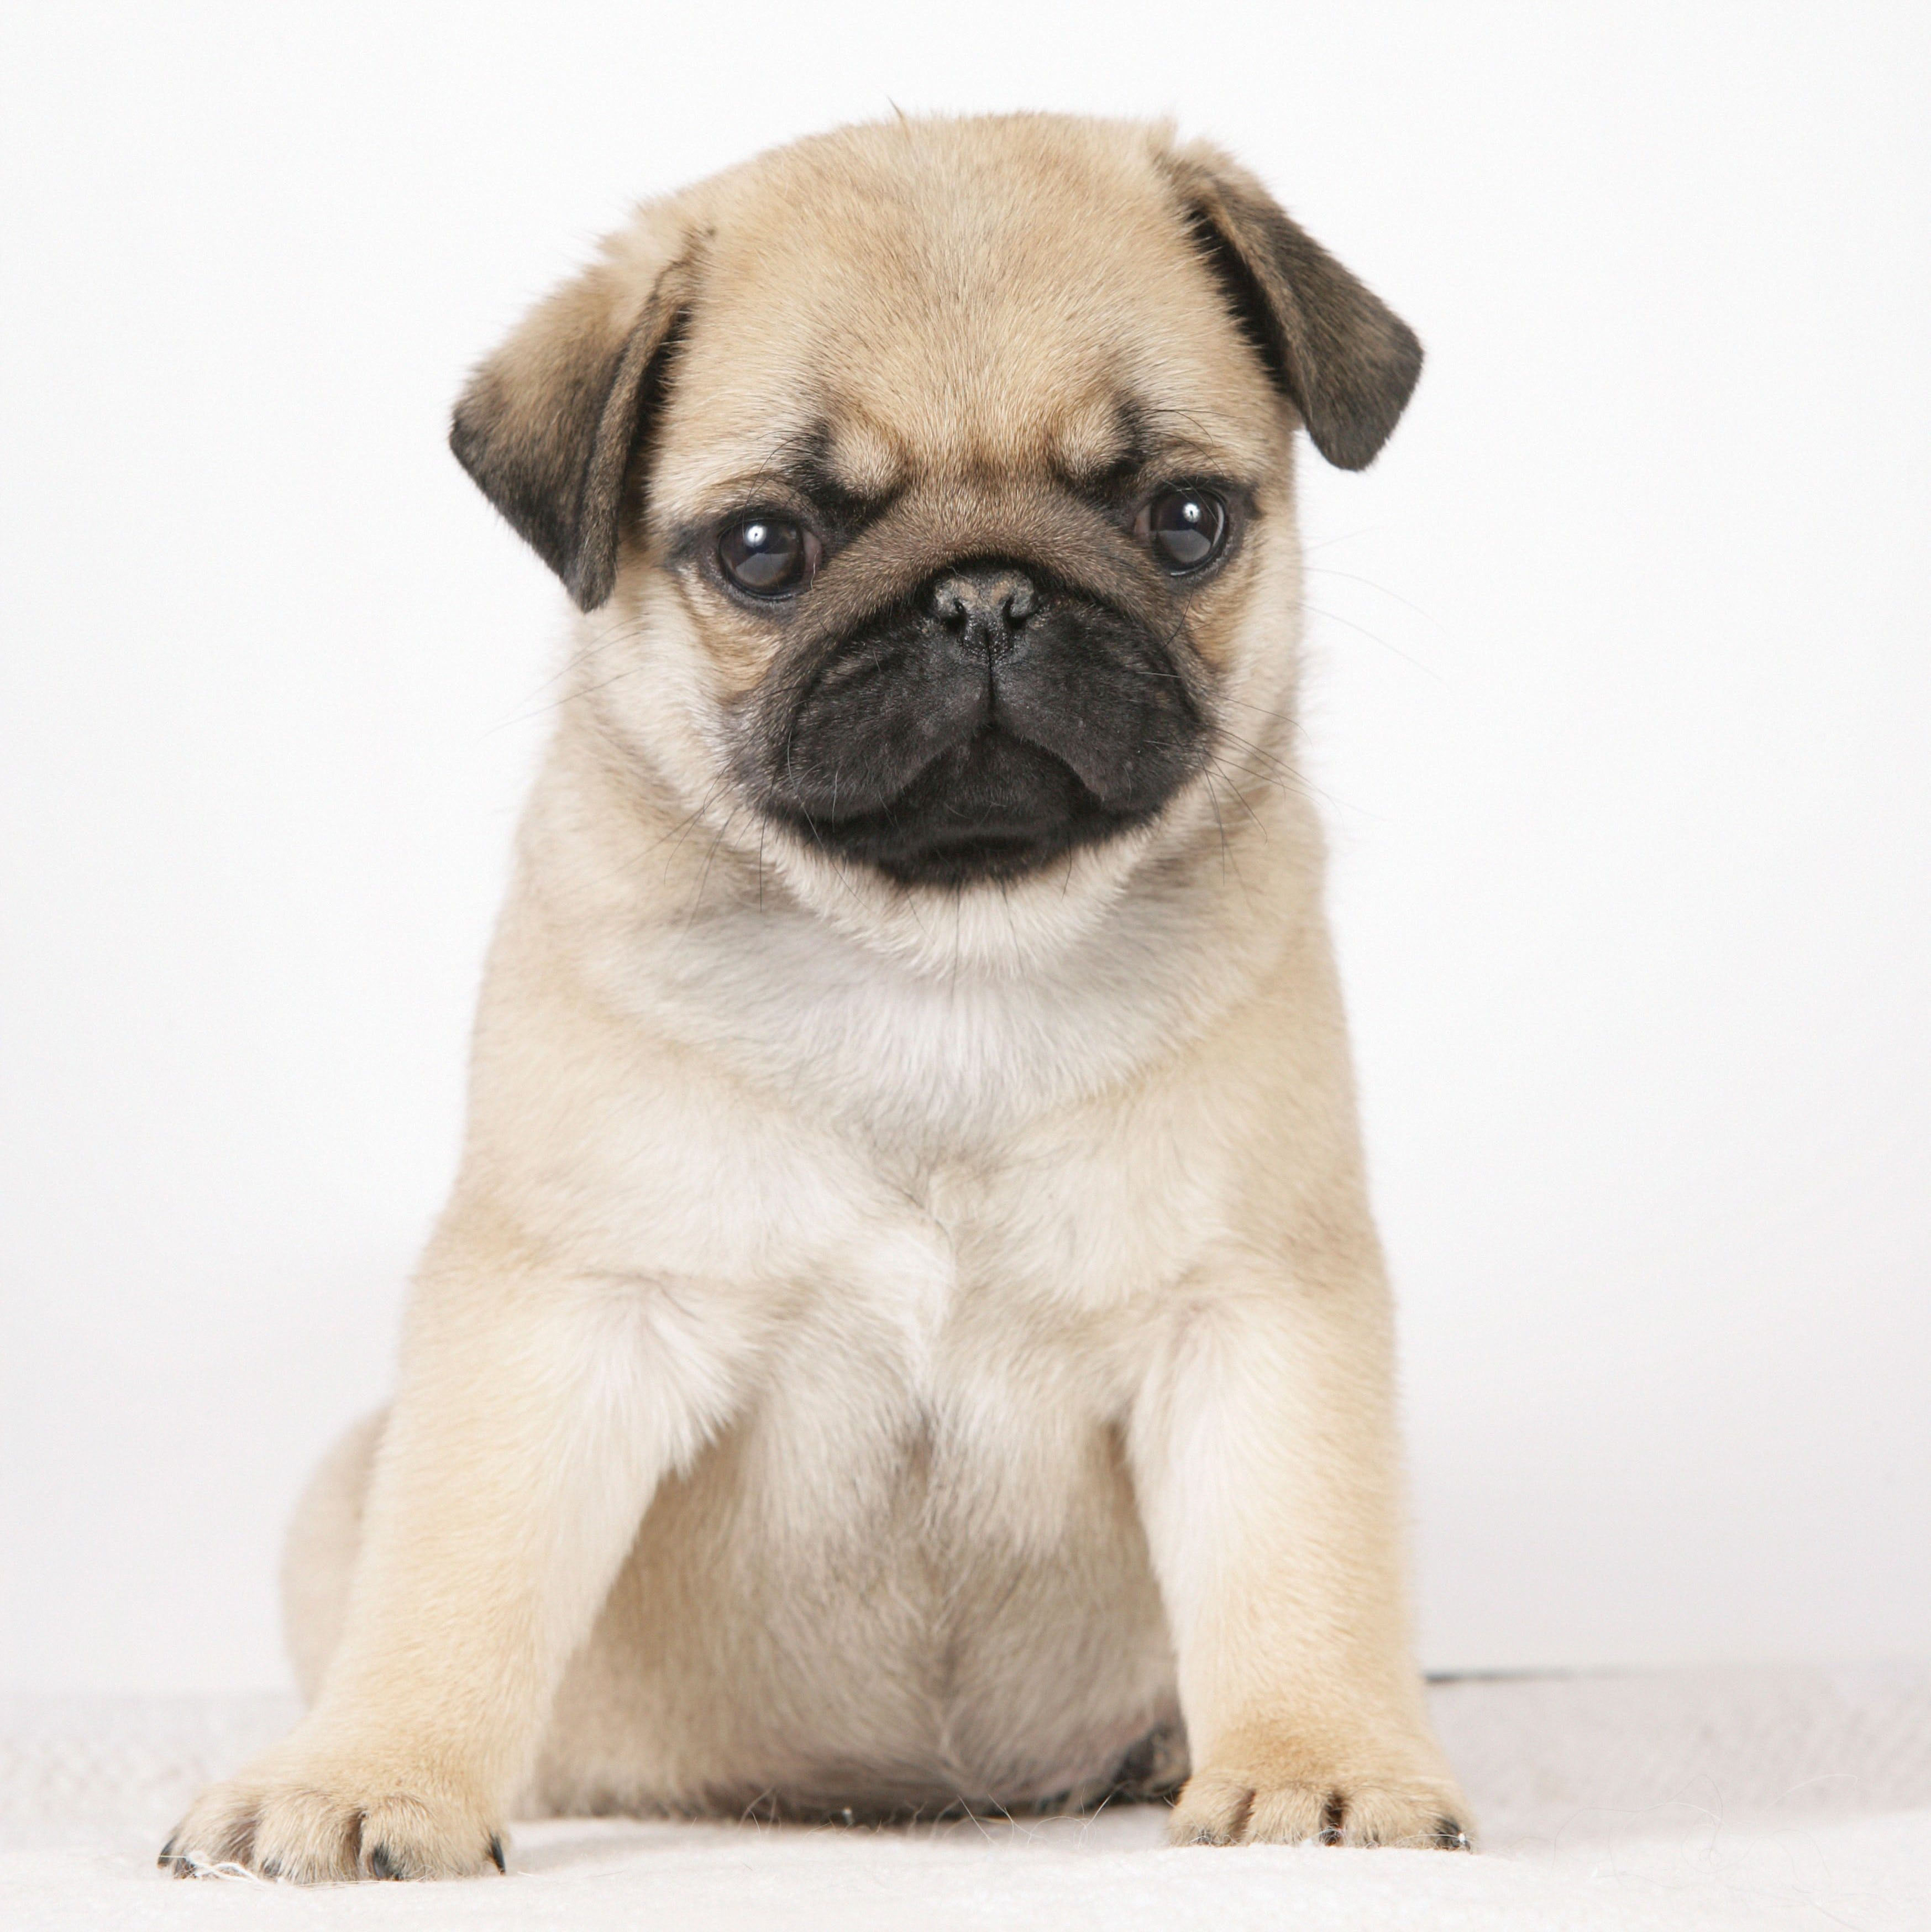 National Puppy Day Yawning Walkies And Puppy Dog Eyes Pug